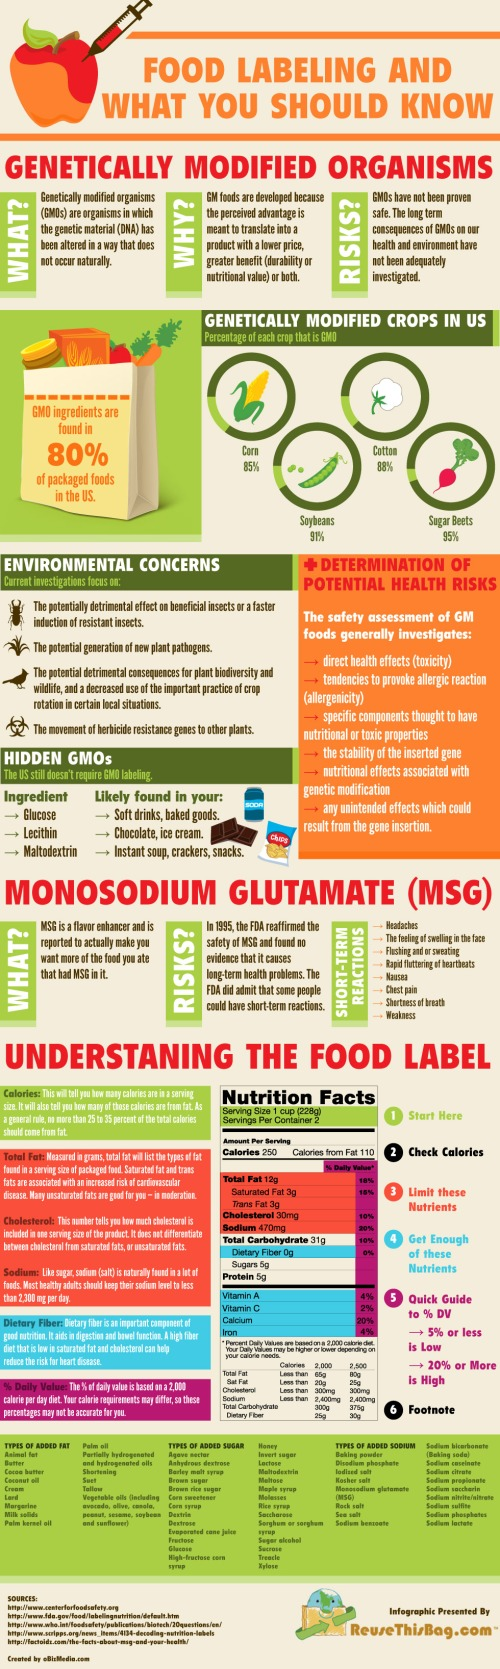 Food Labeling Infographic